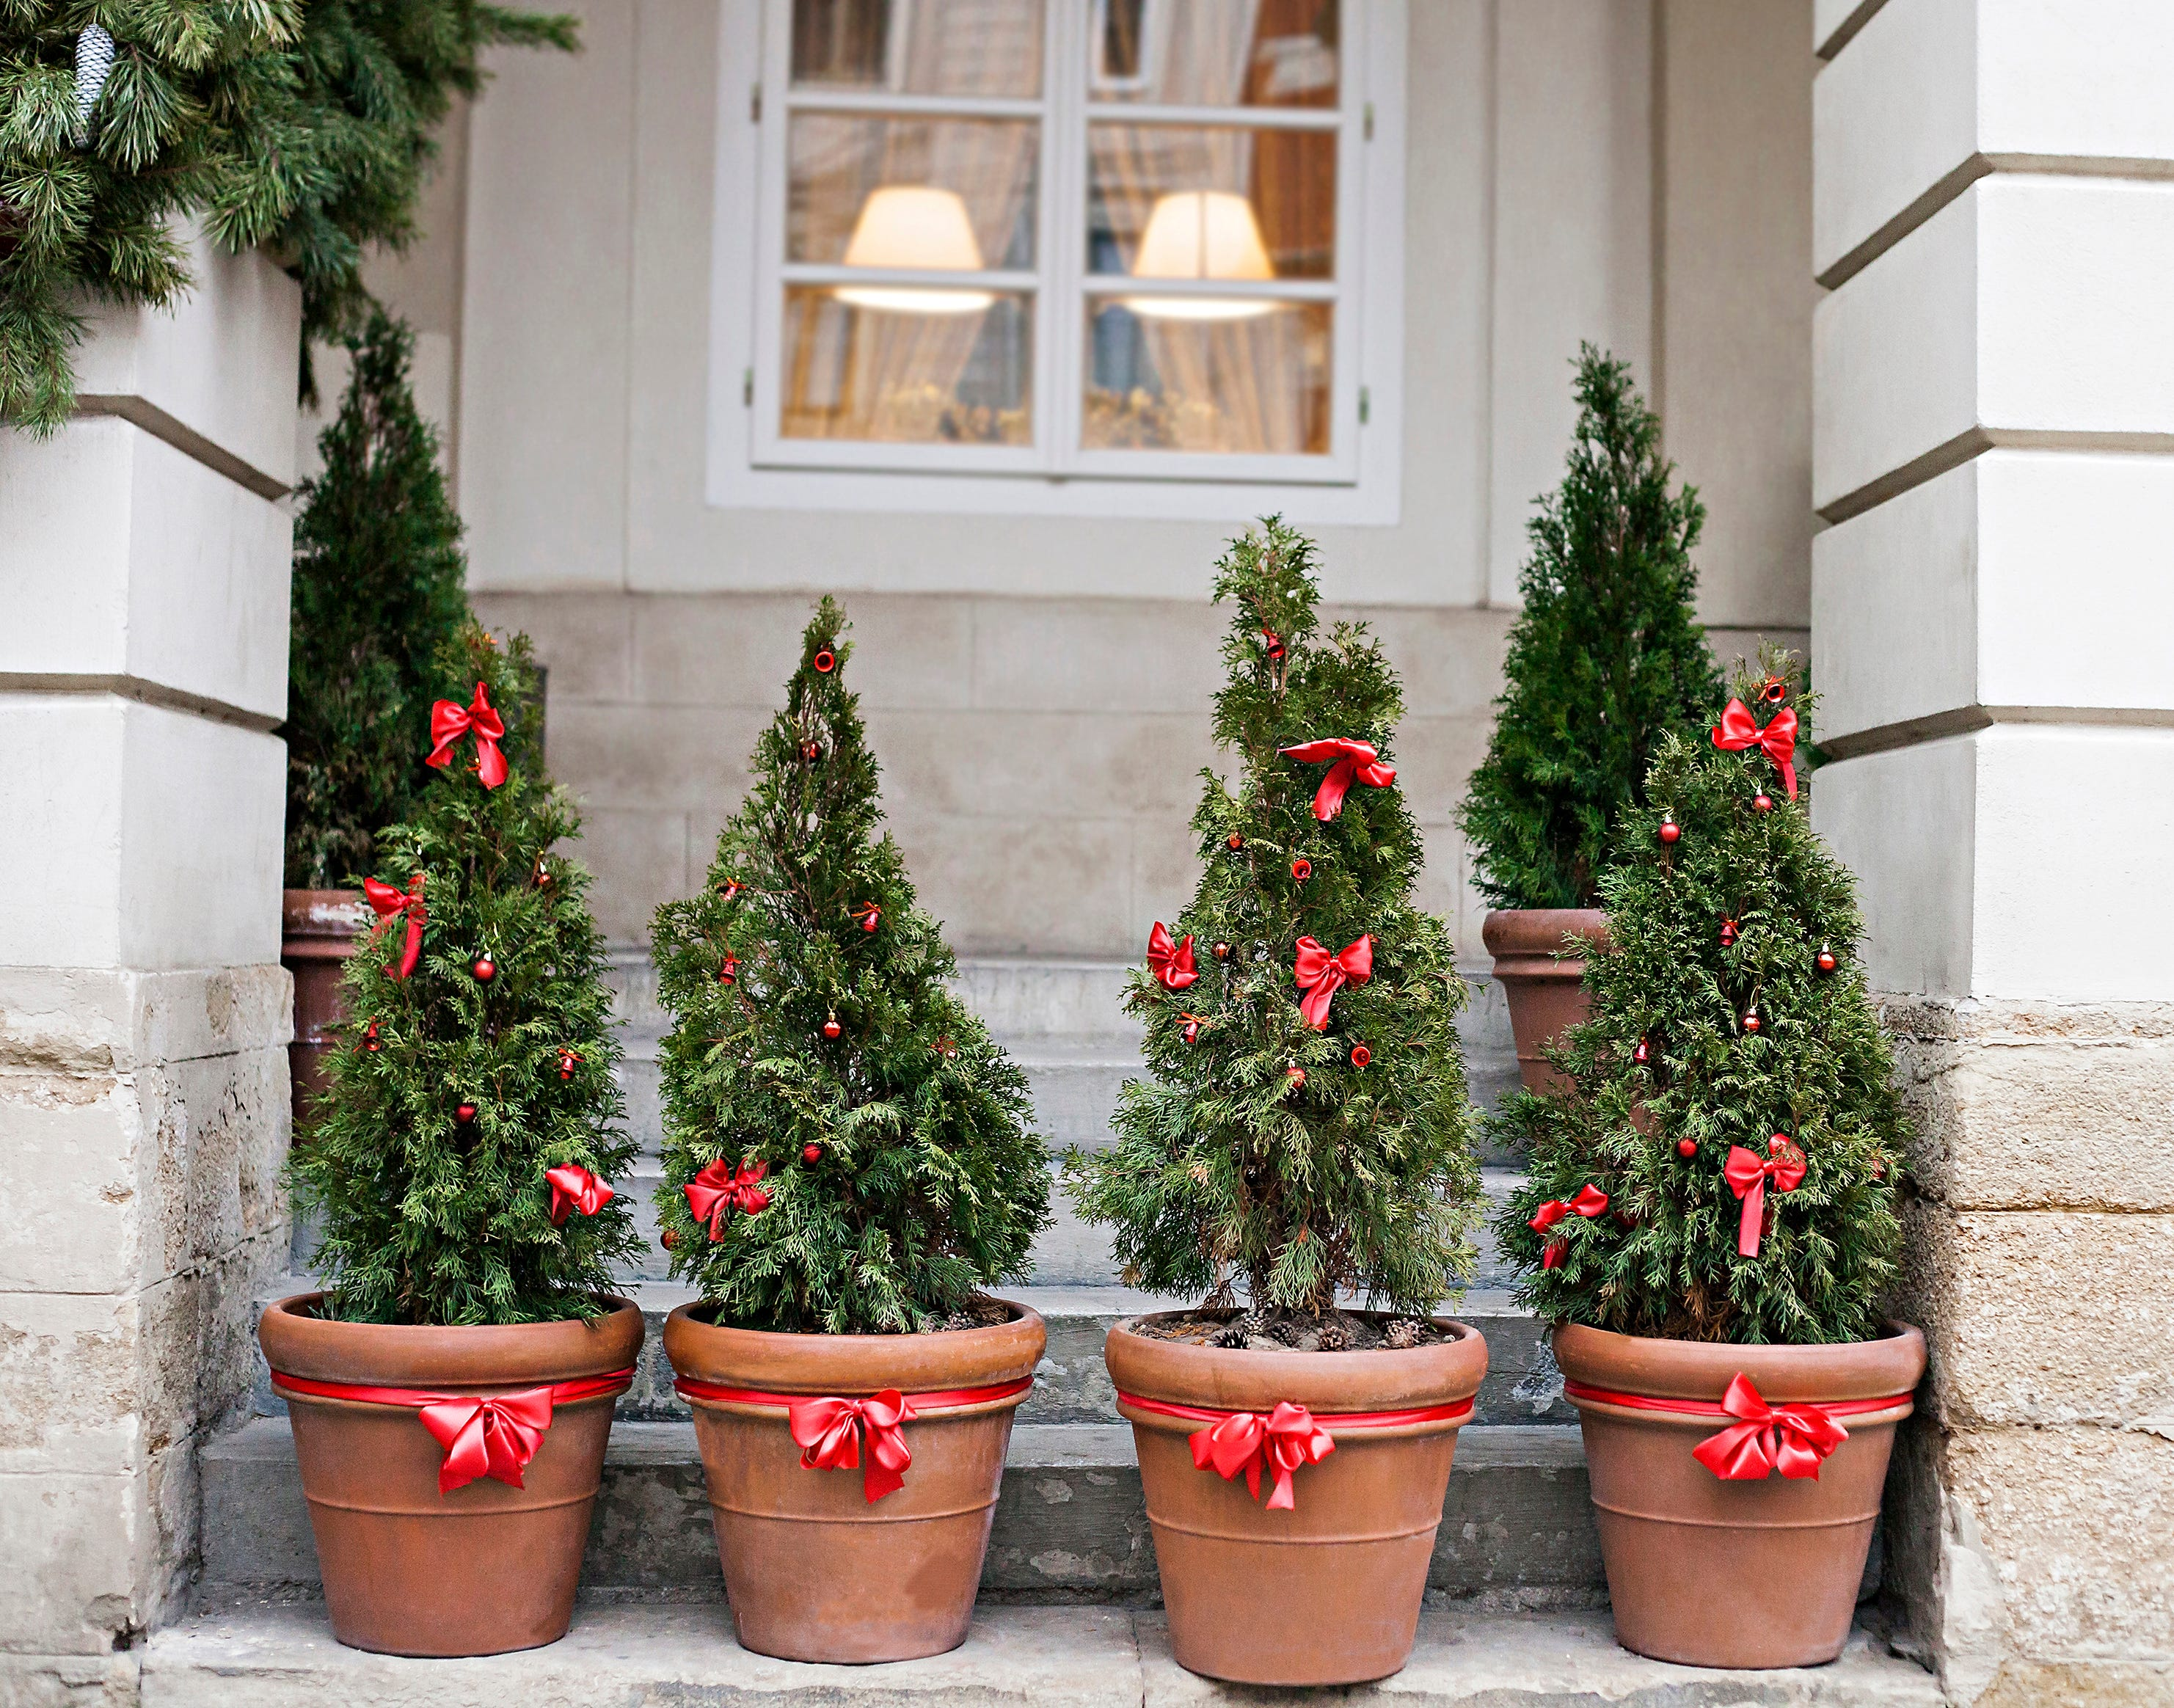 Make a lasting first impression with holiday guests with decorations outside the house.